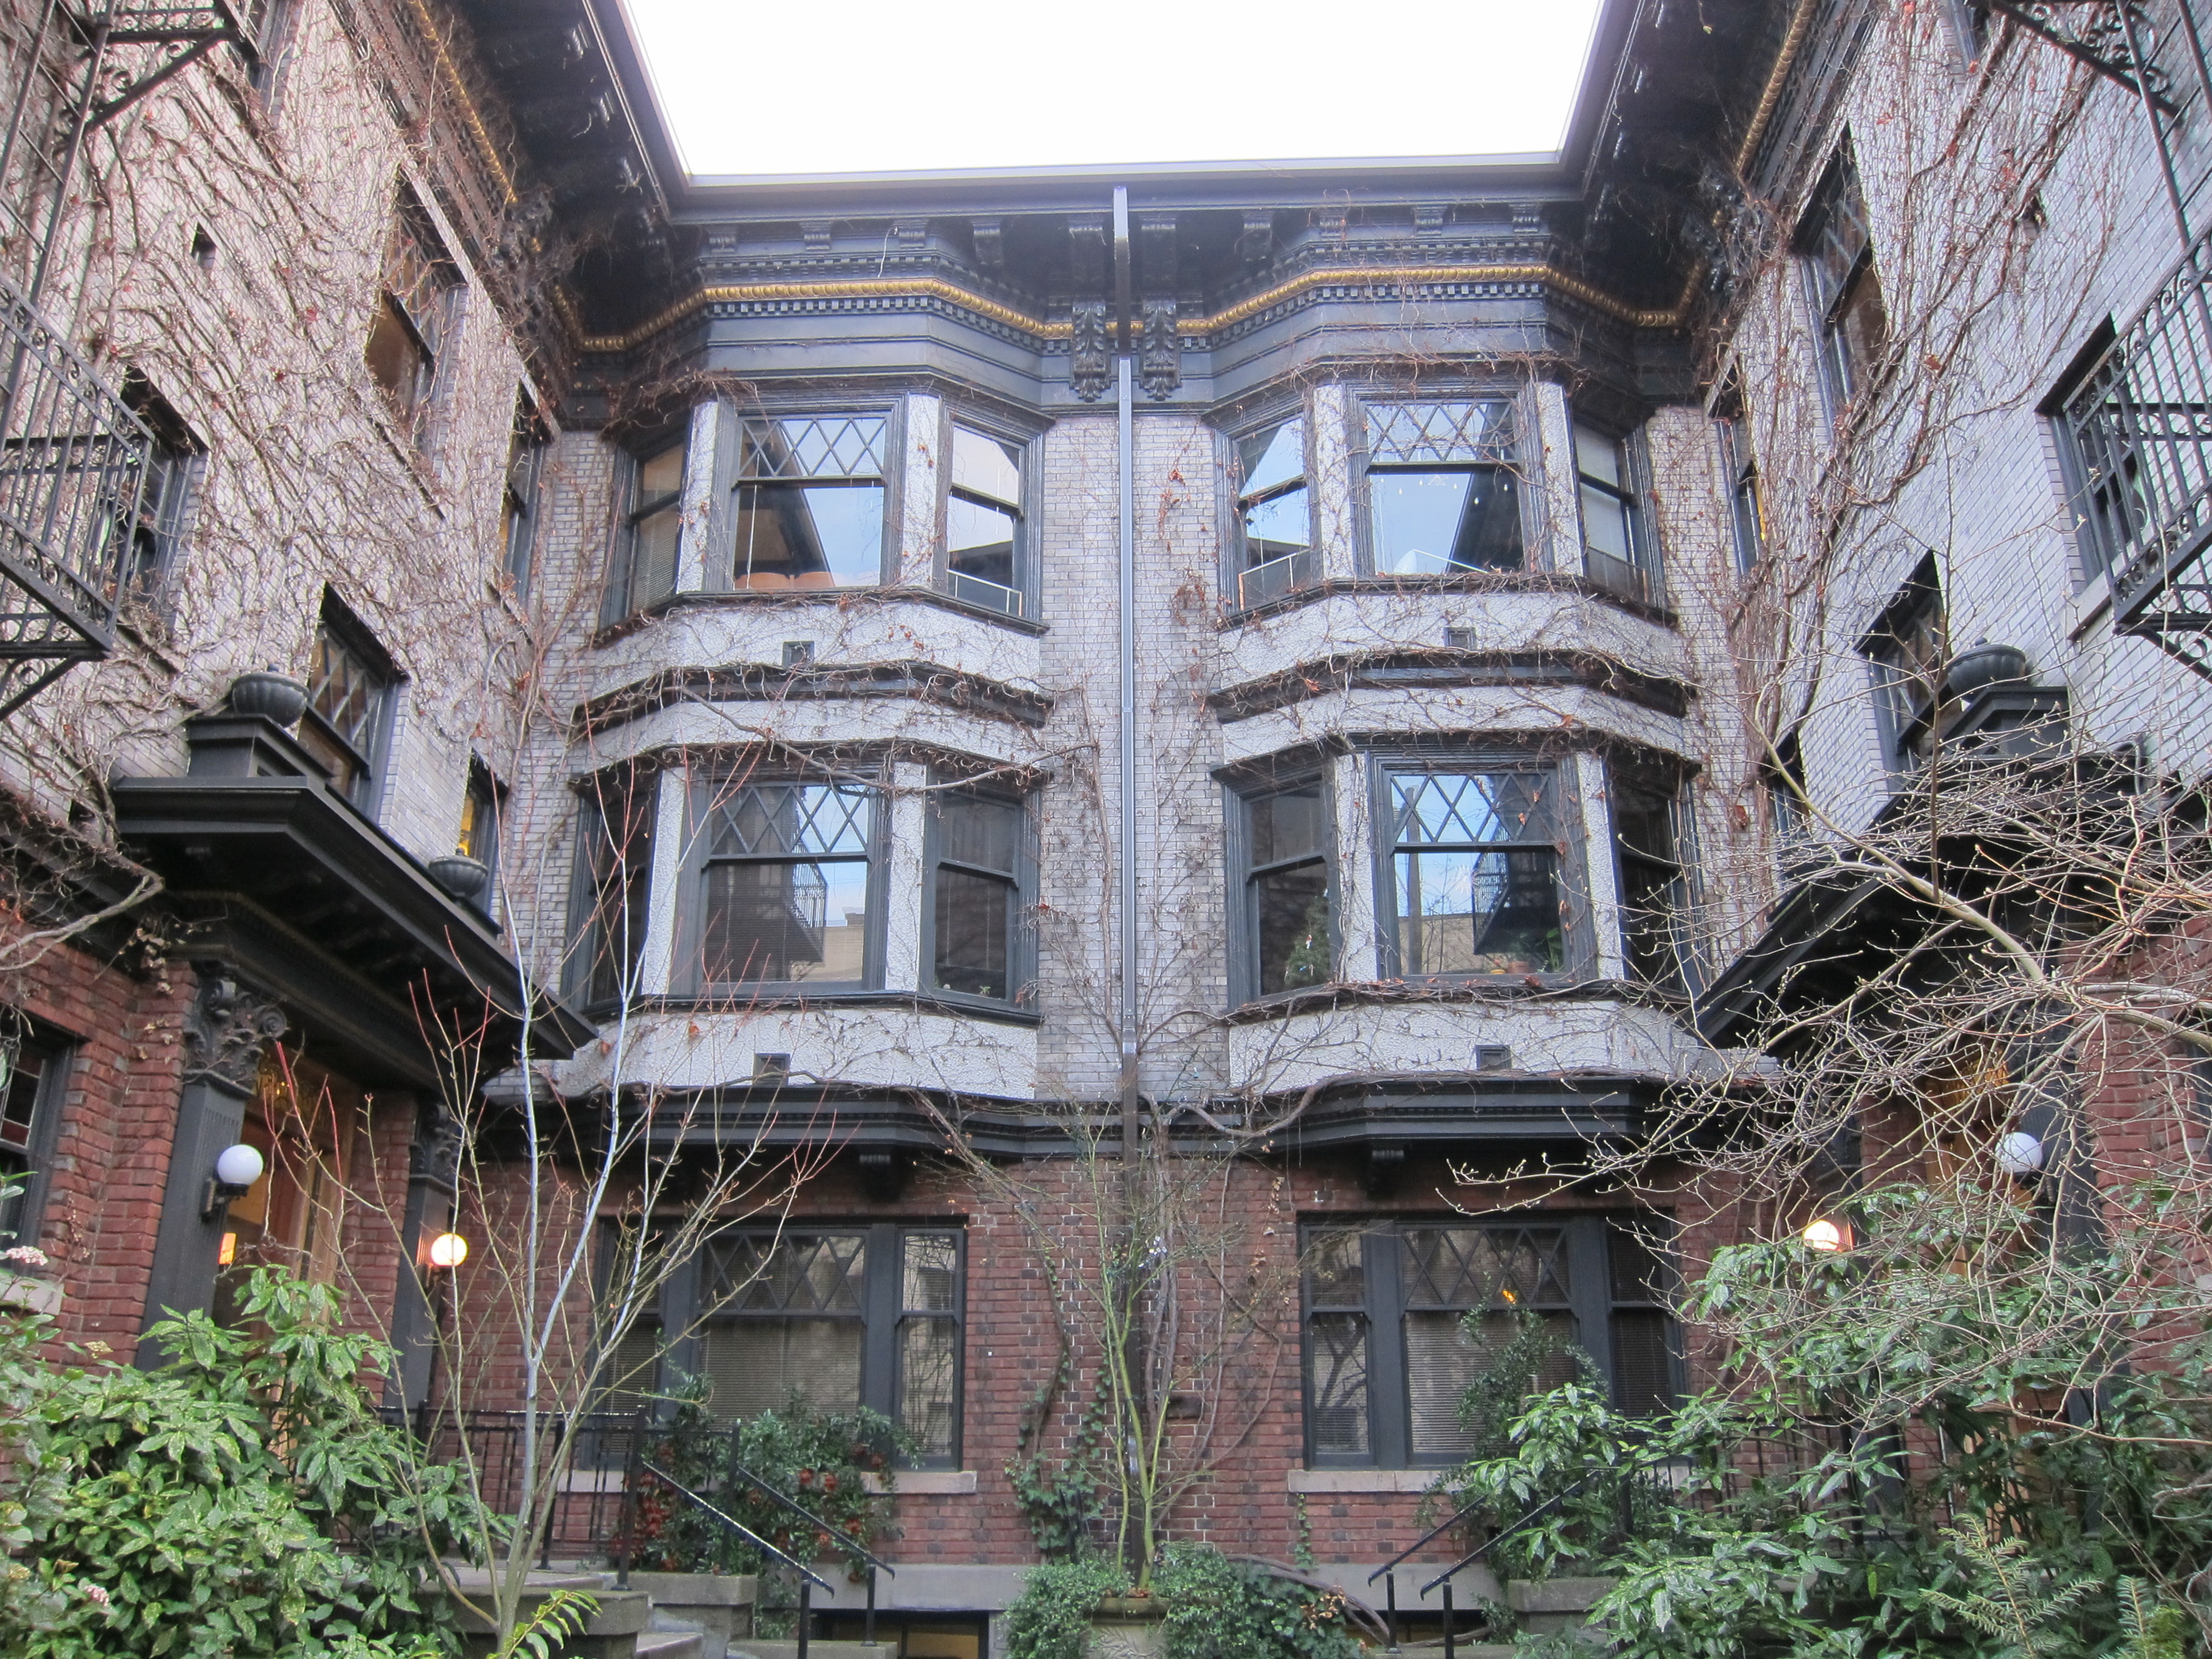 An apartment building with bay windows, viewed from inside a courtyard.